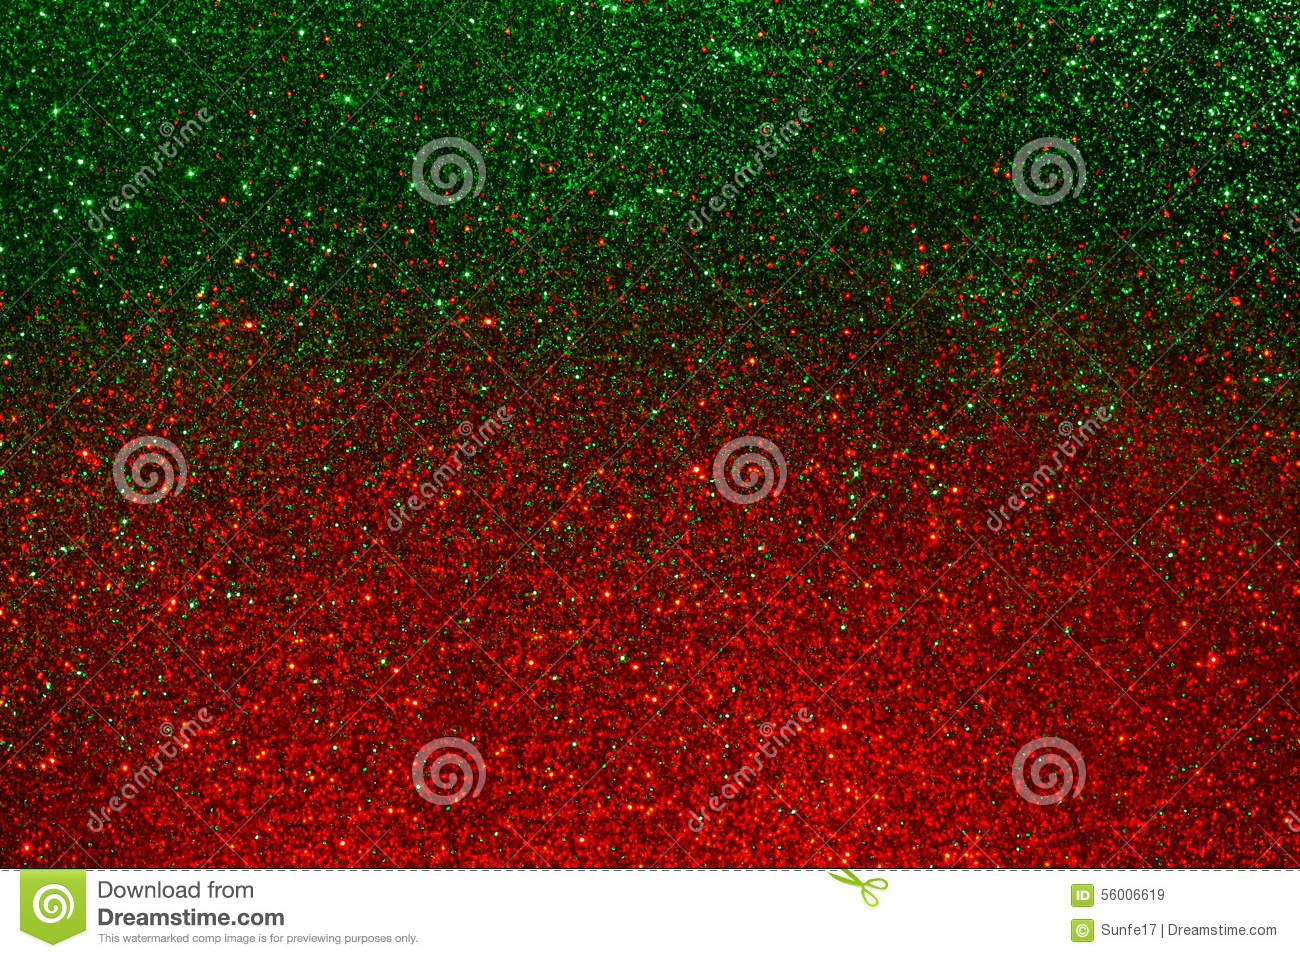 red and green sparkles - photo #11